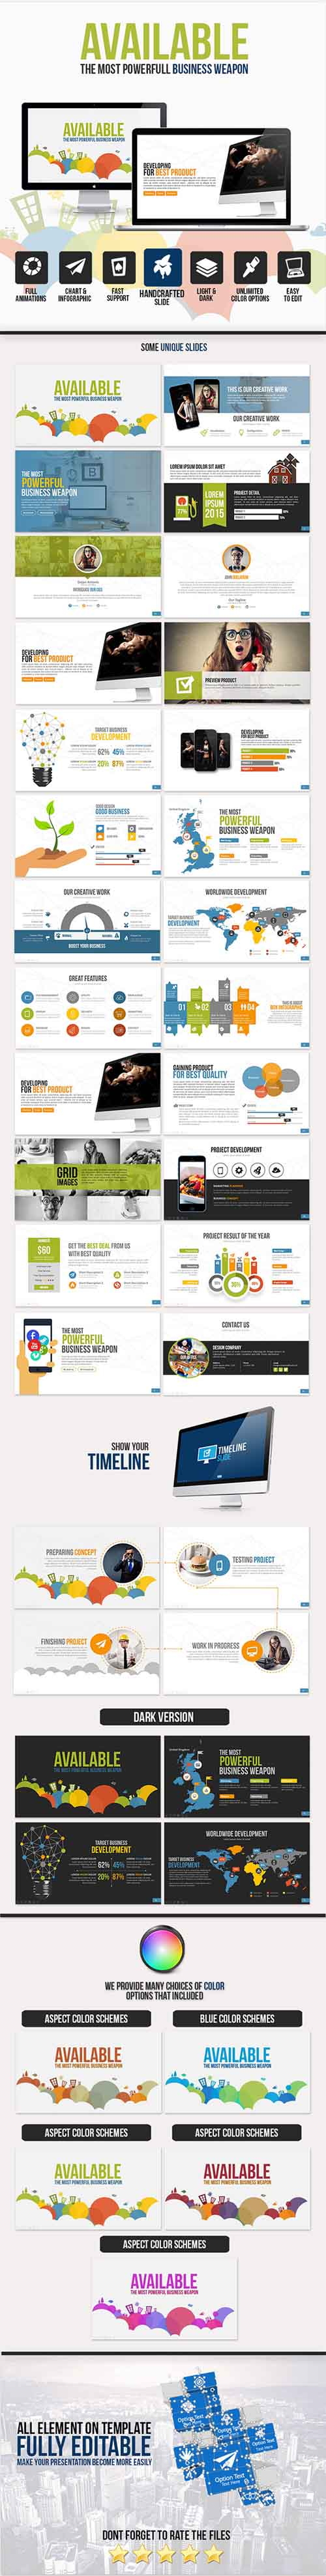 Available PowerPoint Template 10924156